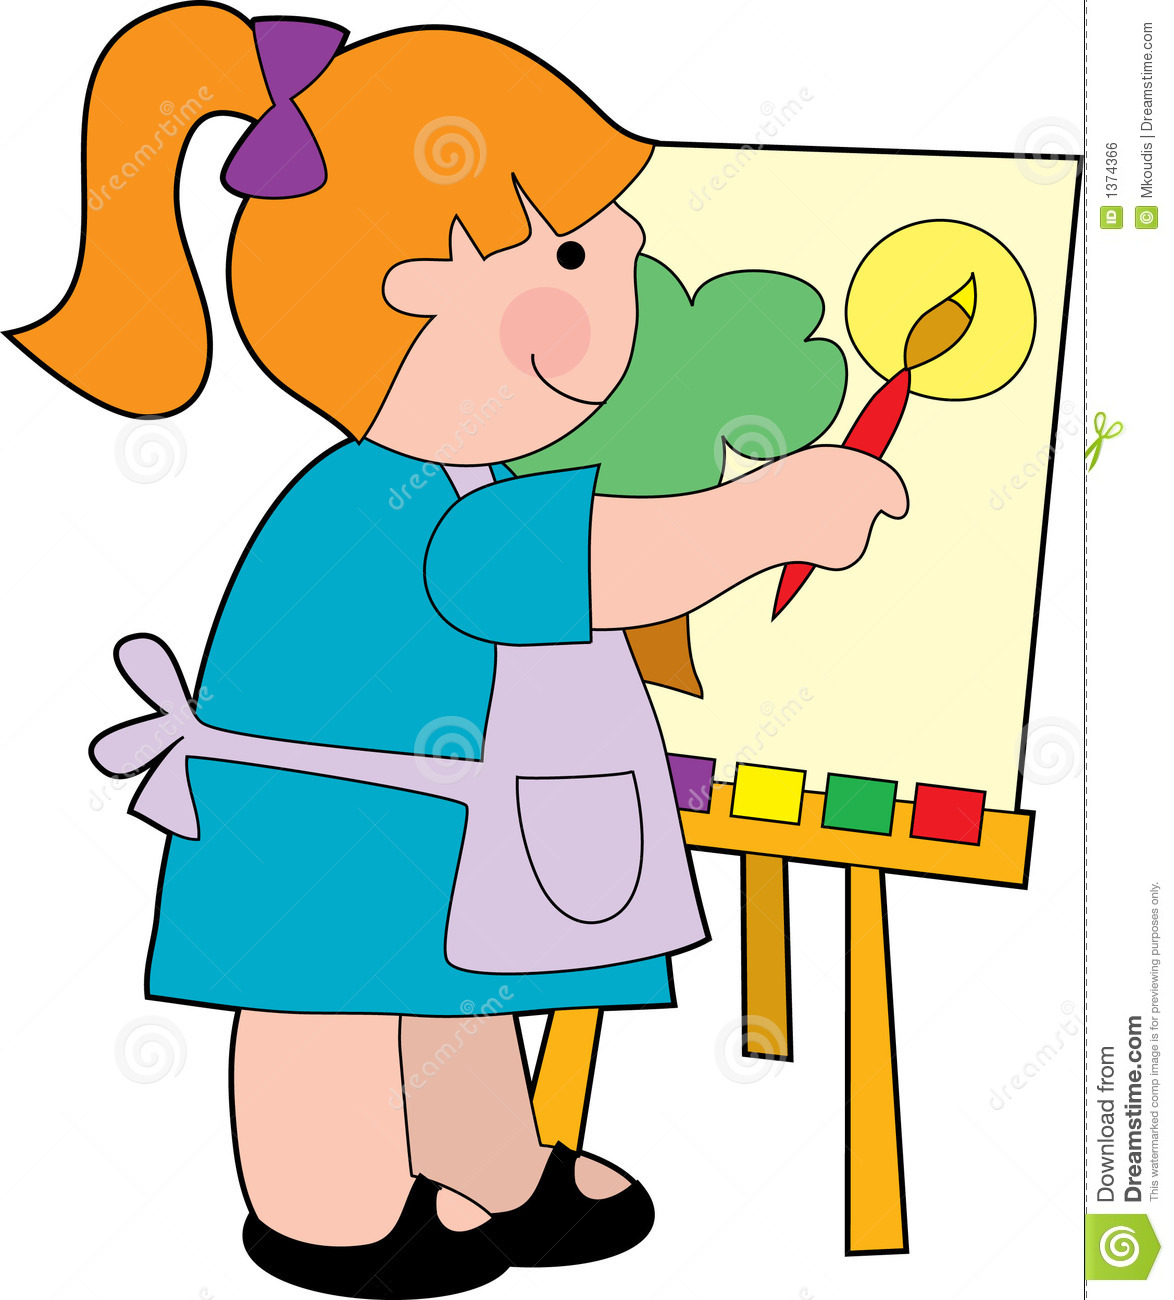 Painter clipart clip art. Kids painting free download